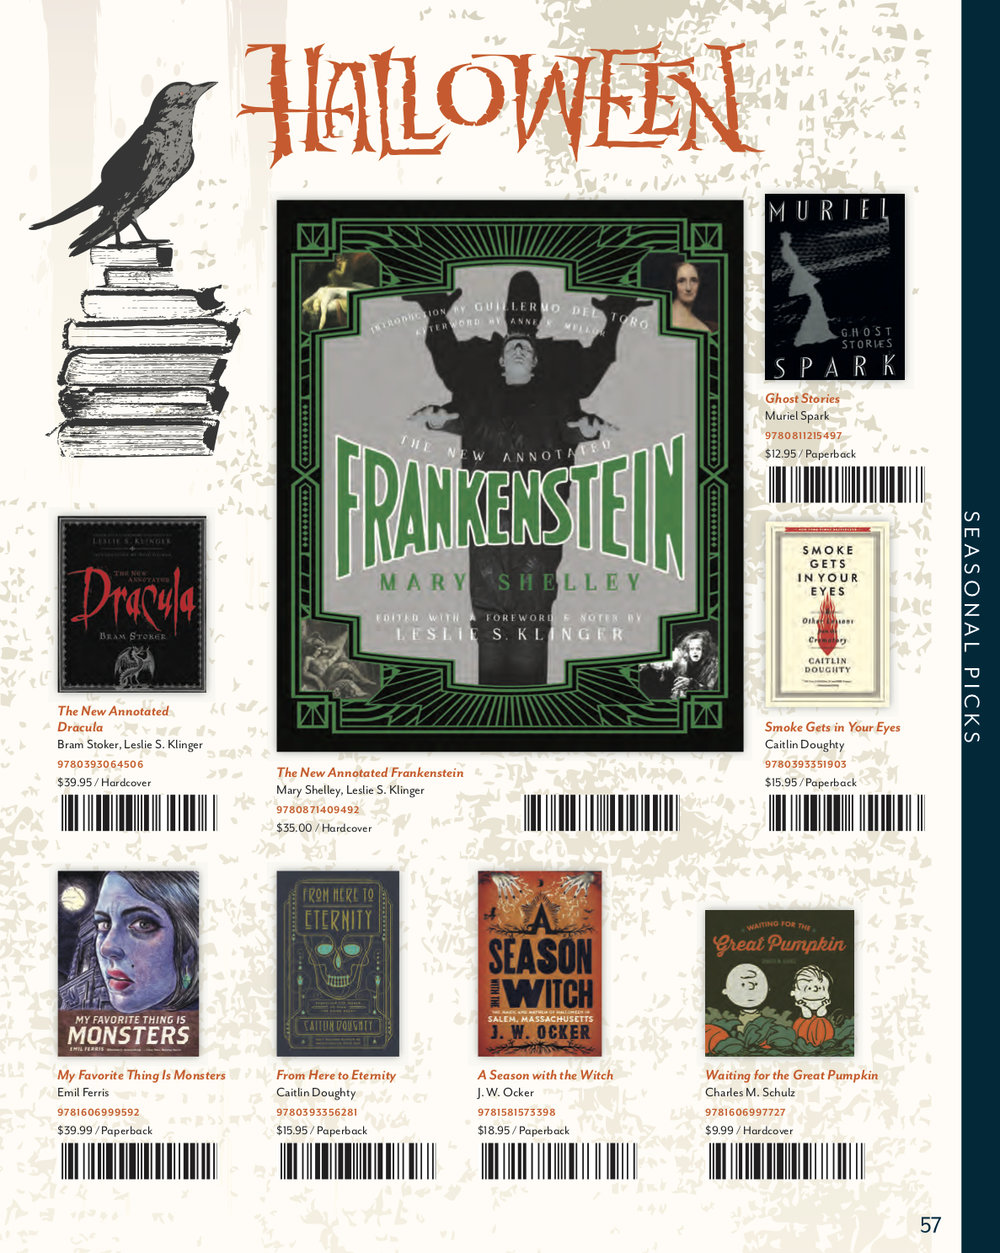 WW Norton Halloween Titles 2018.jpg